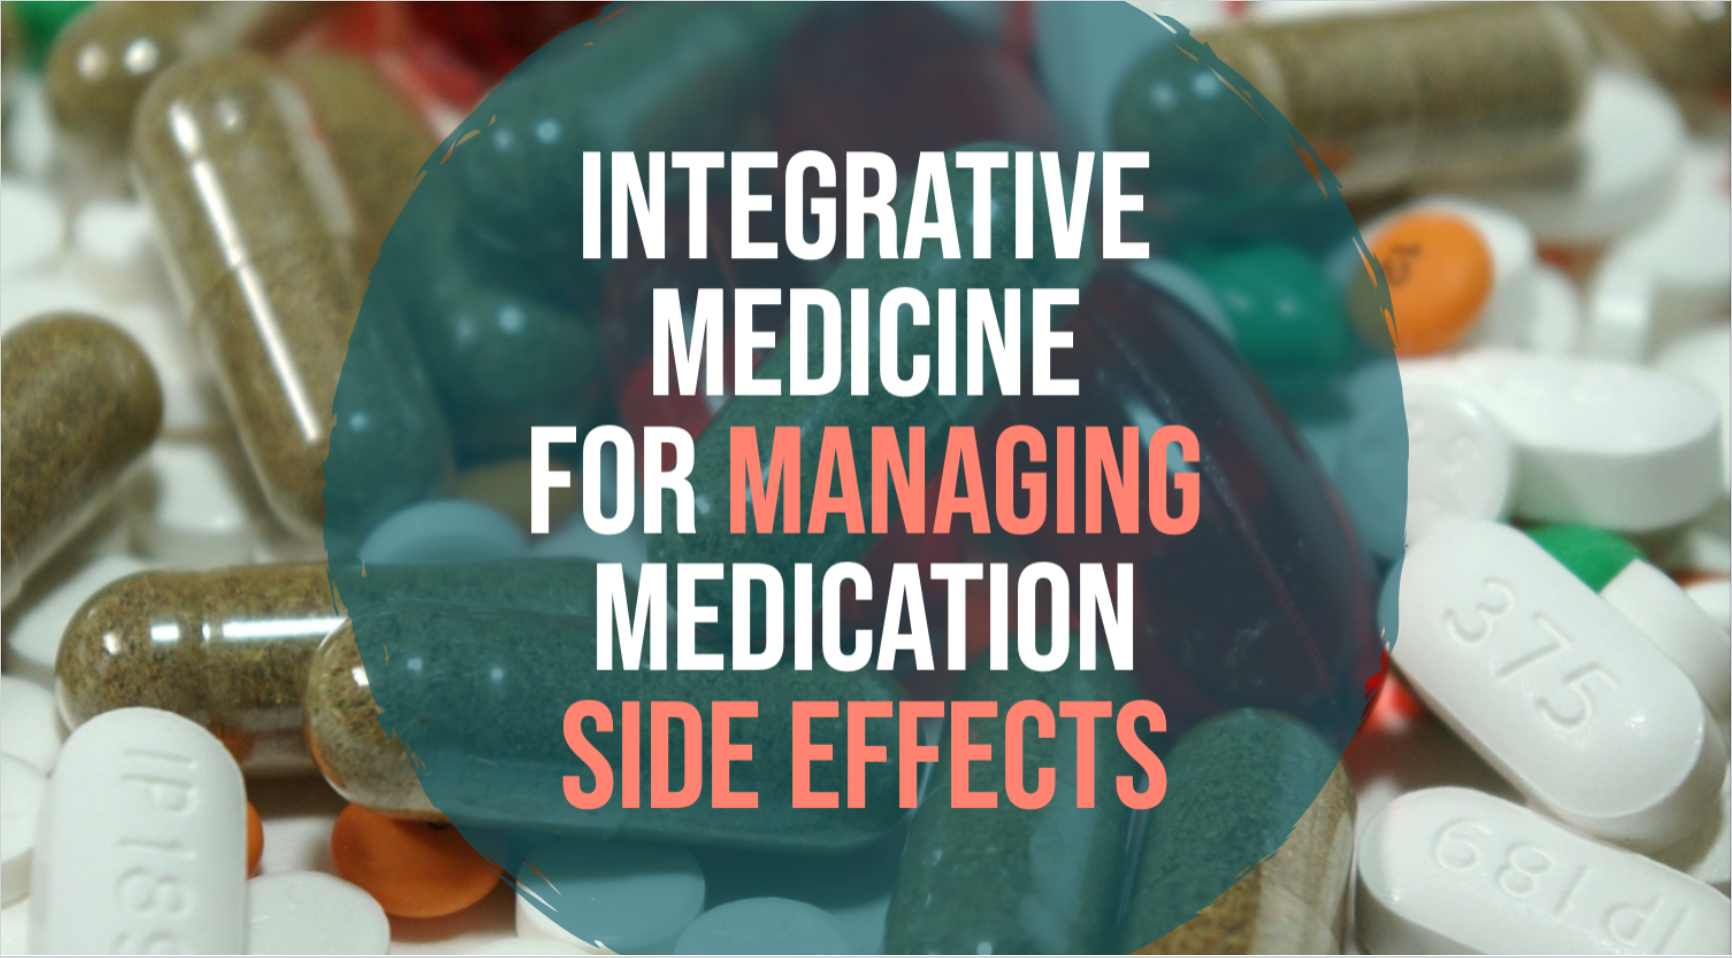 Integrative Medicine for Managing Medication Side Effects